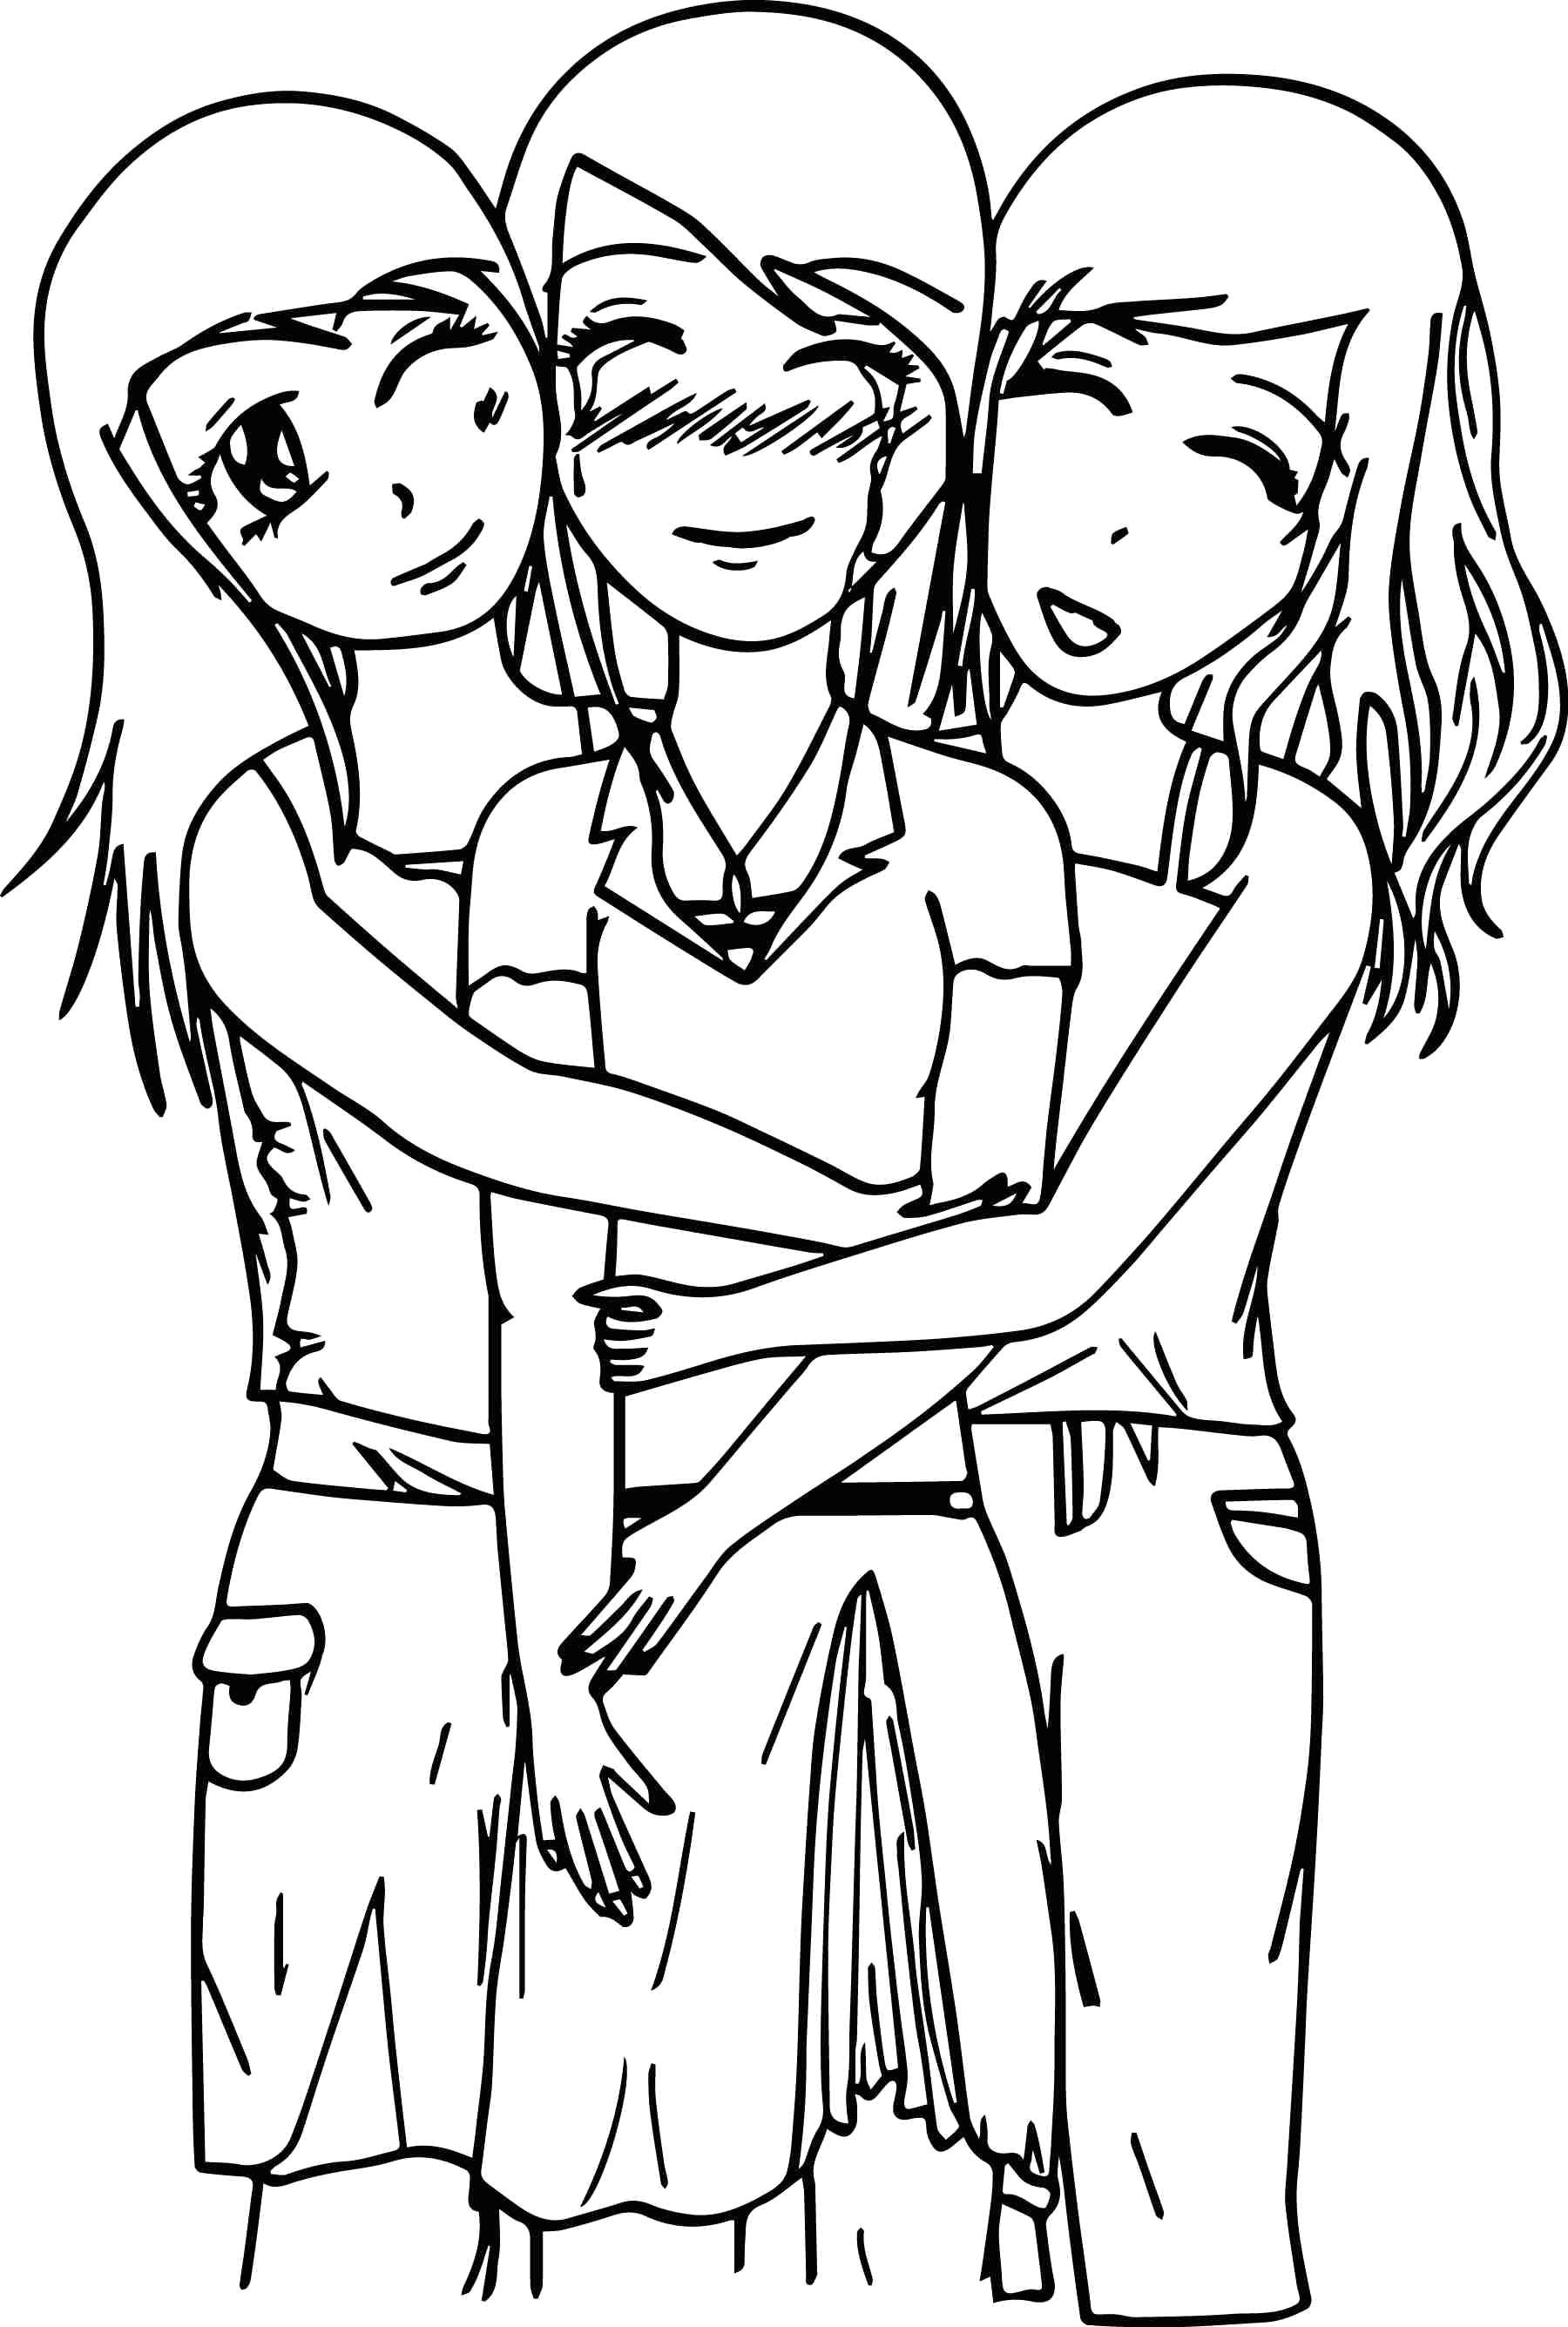 Confidential Best Friend Coloring Pages To Print Friends